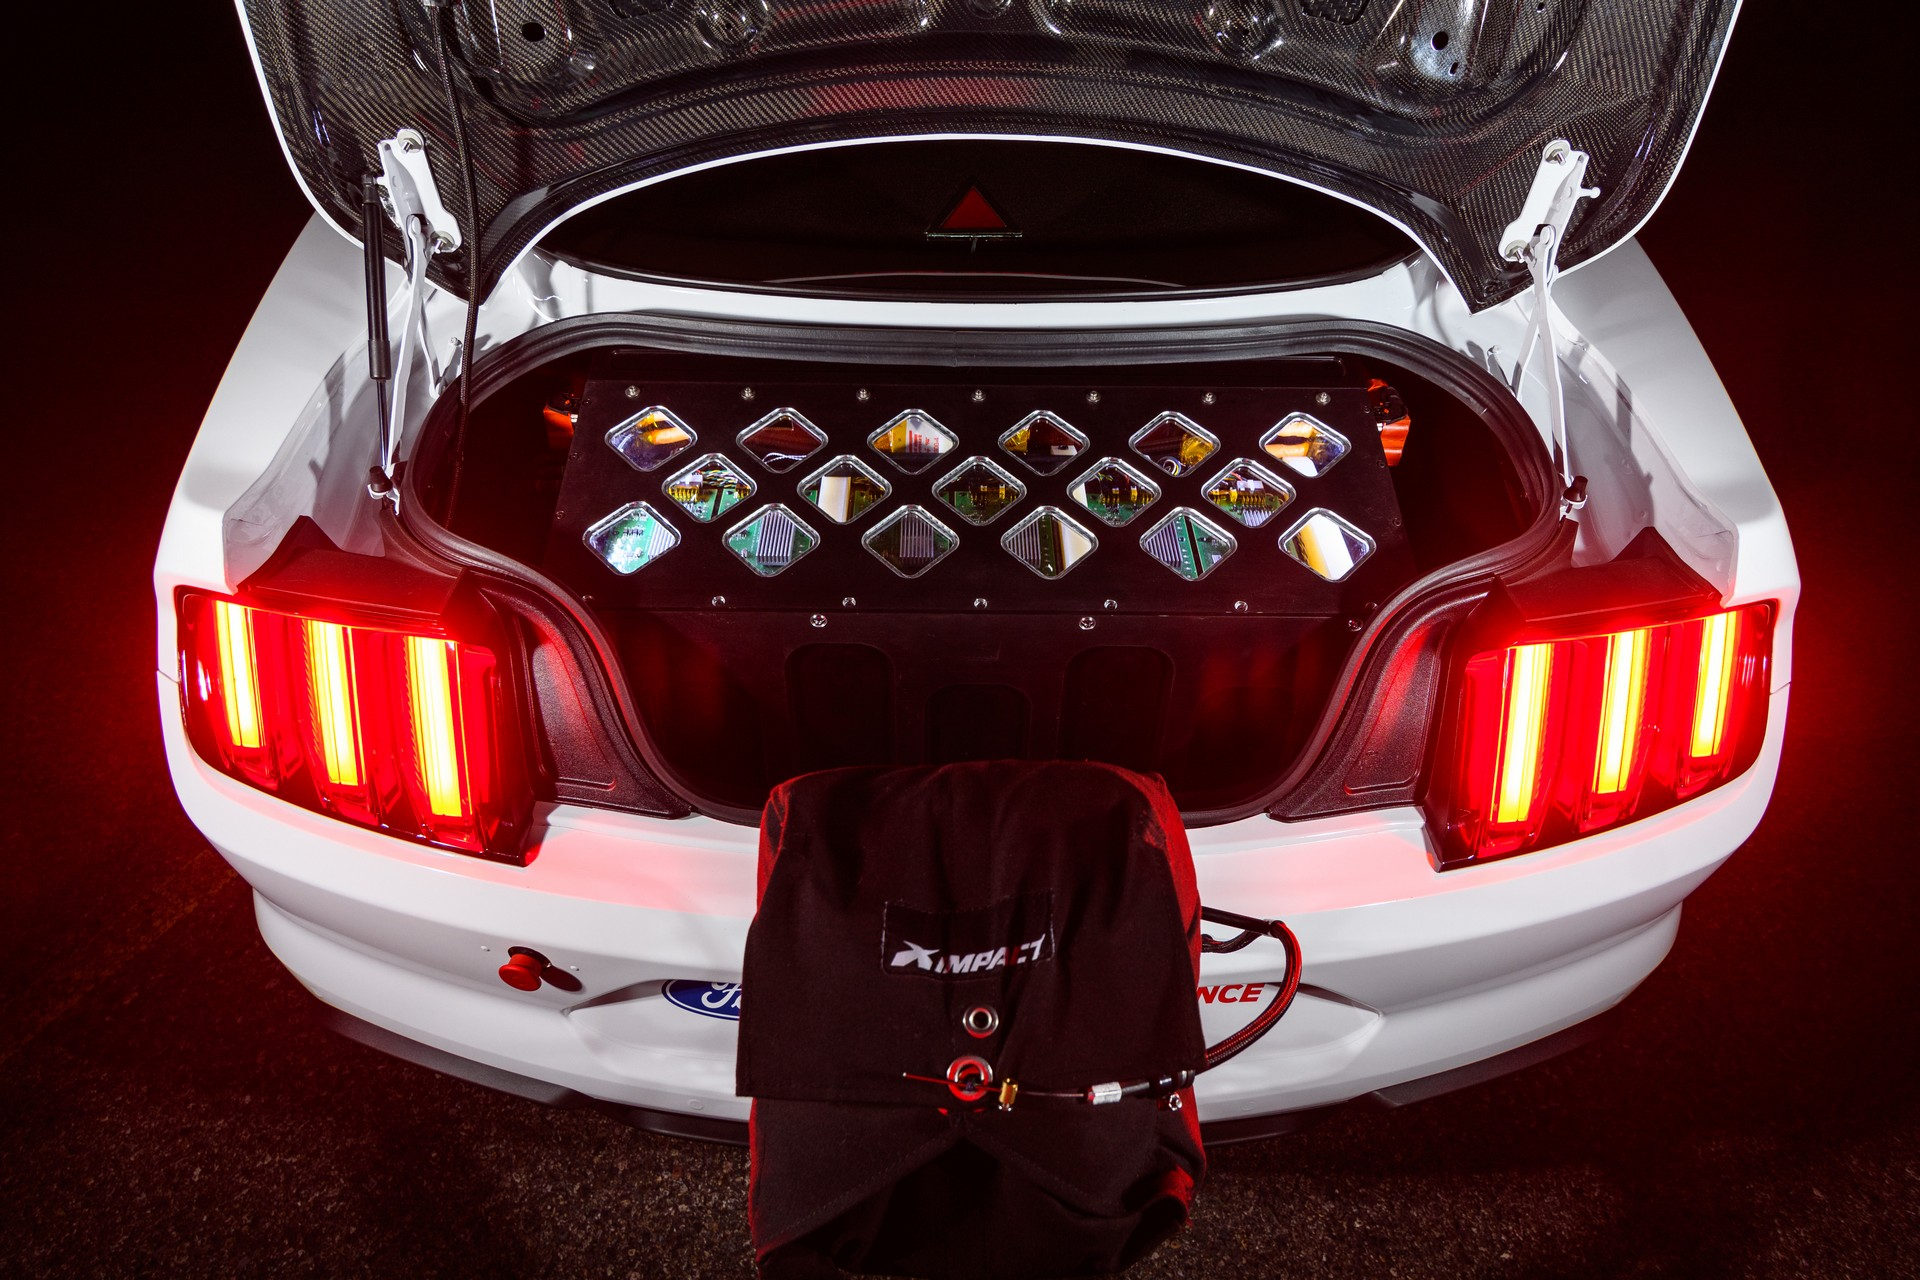 Electric-Ford-Mustang-Cobra-Jet-Prototype-6